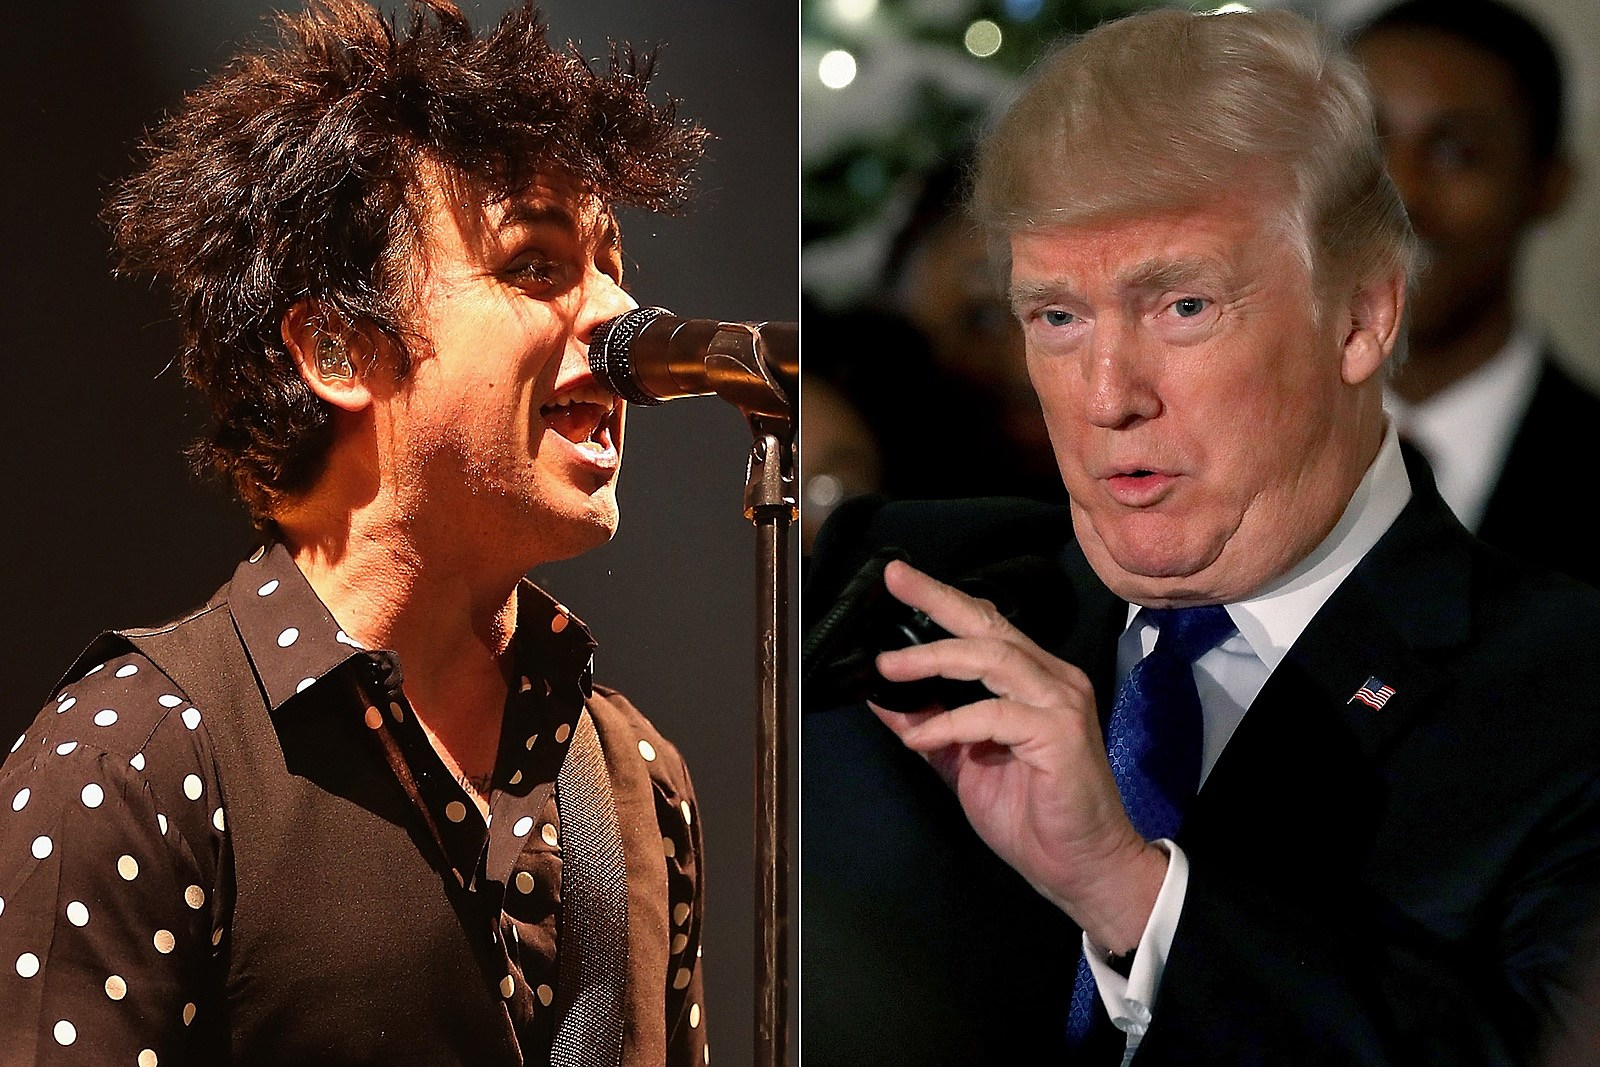 Don T Listen To My F Ing Records Green Day Star To Trump Fans